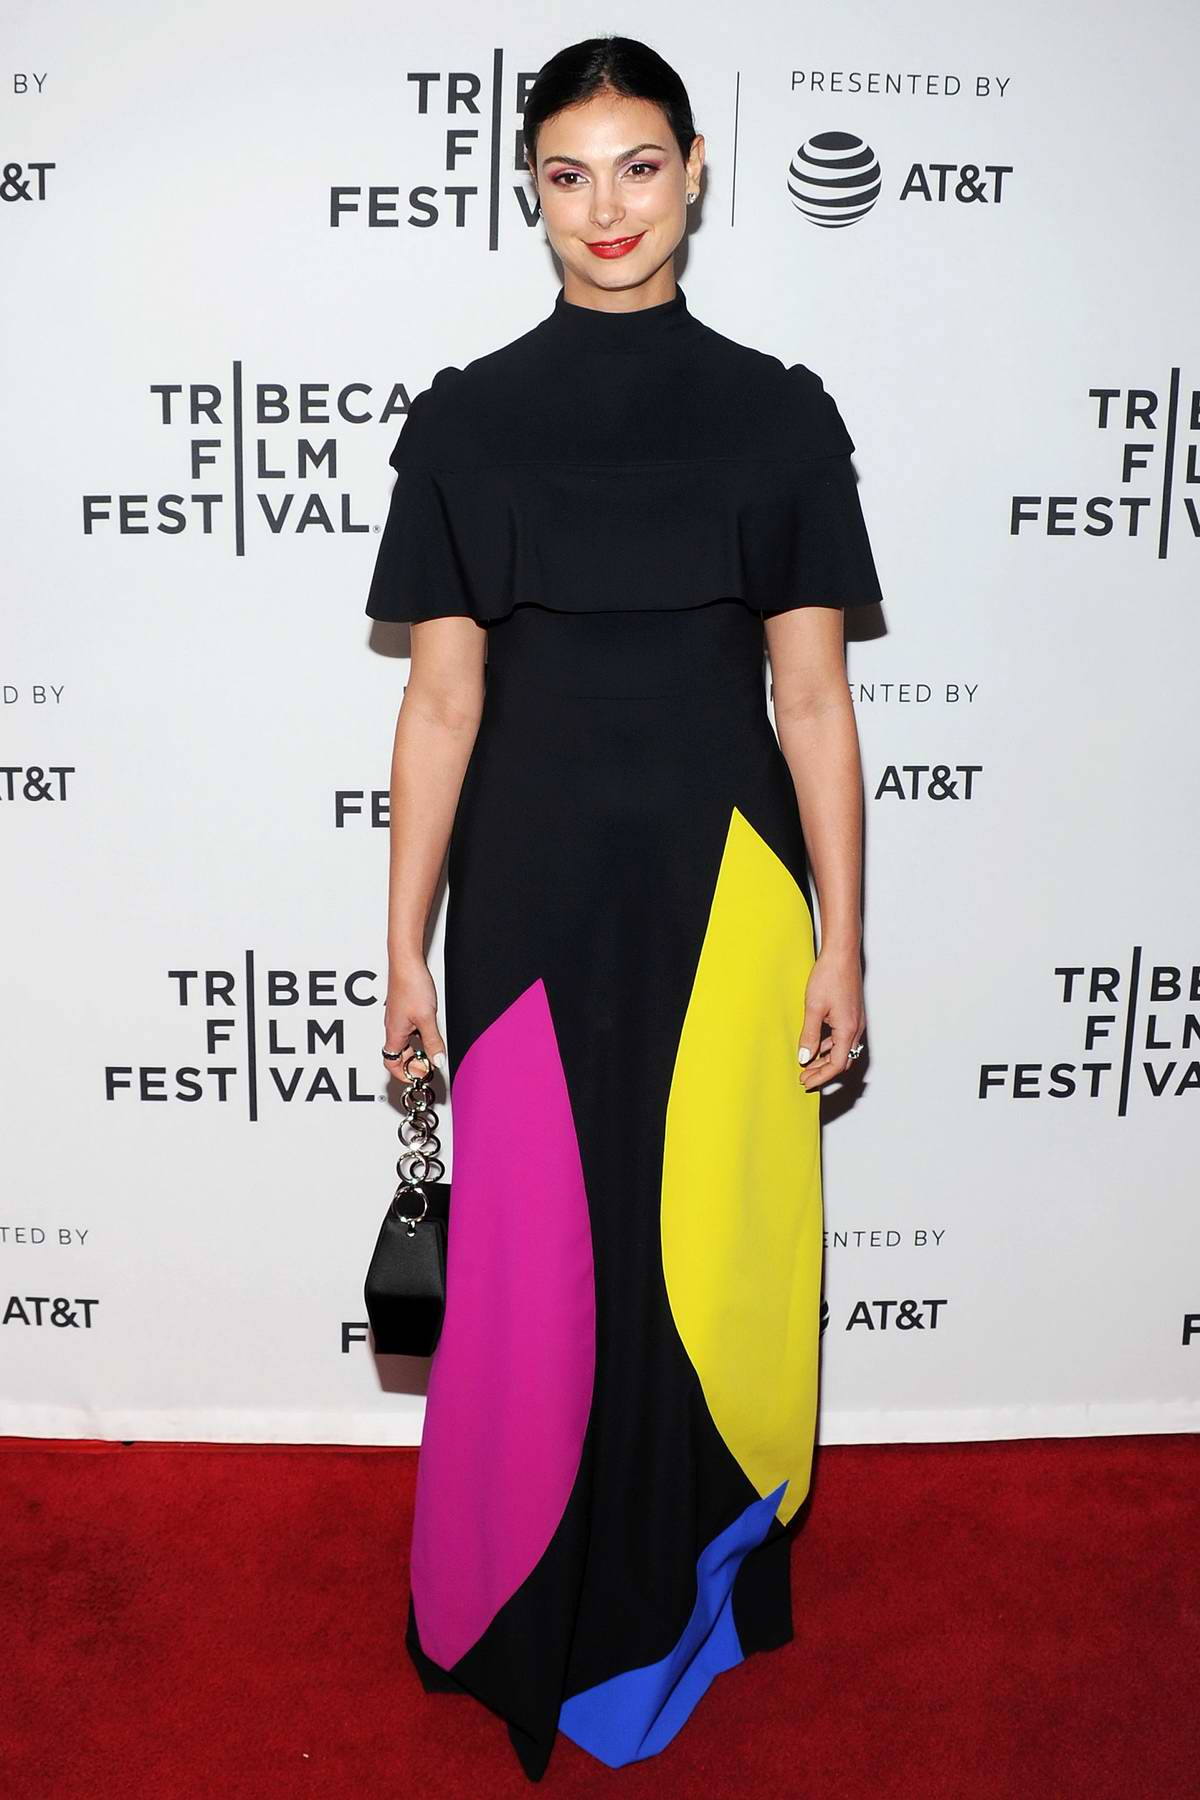 Morena Baccarin attends the screening of 'Framing John DeLorean' during the 2019 Tribeca Film Festival in New York City